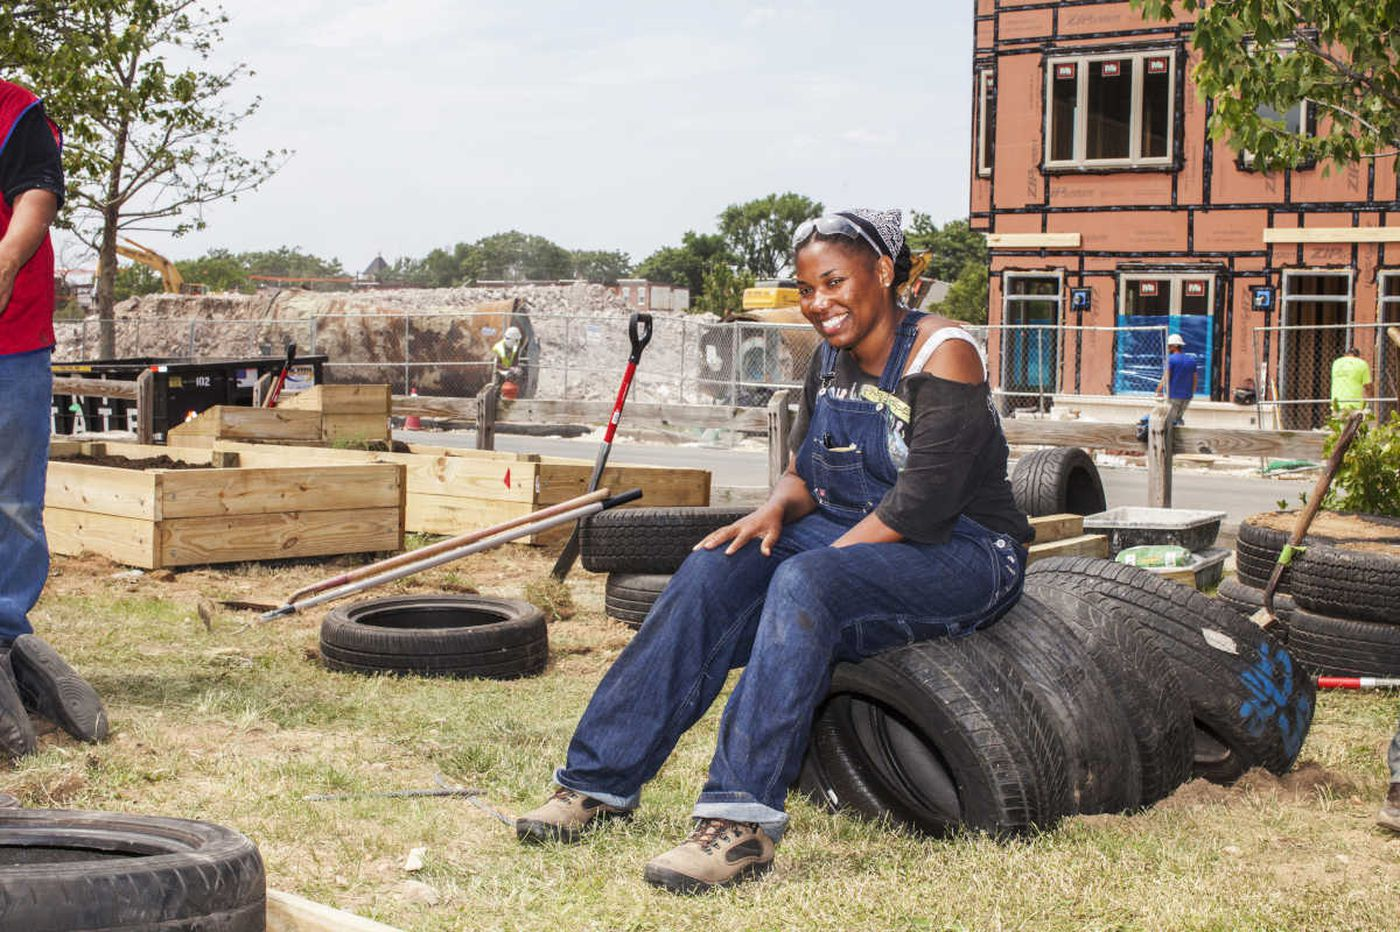 Can design empower a community? North Philly gardeners displaced by PHA will find out